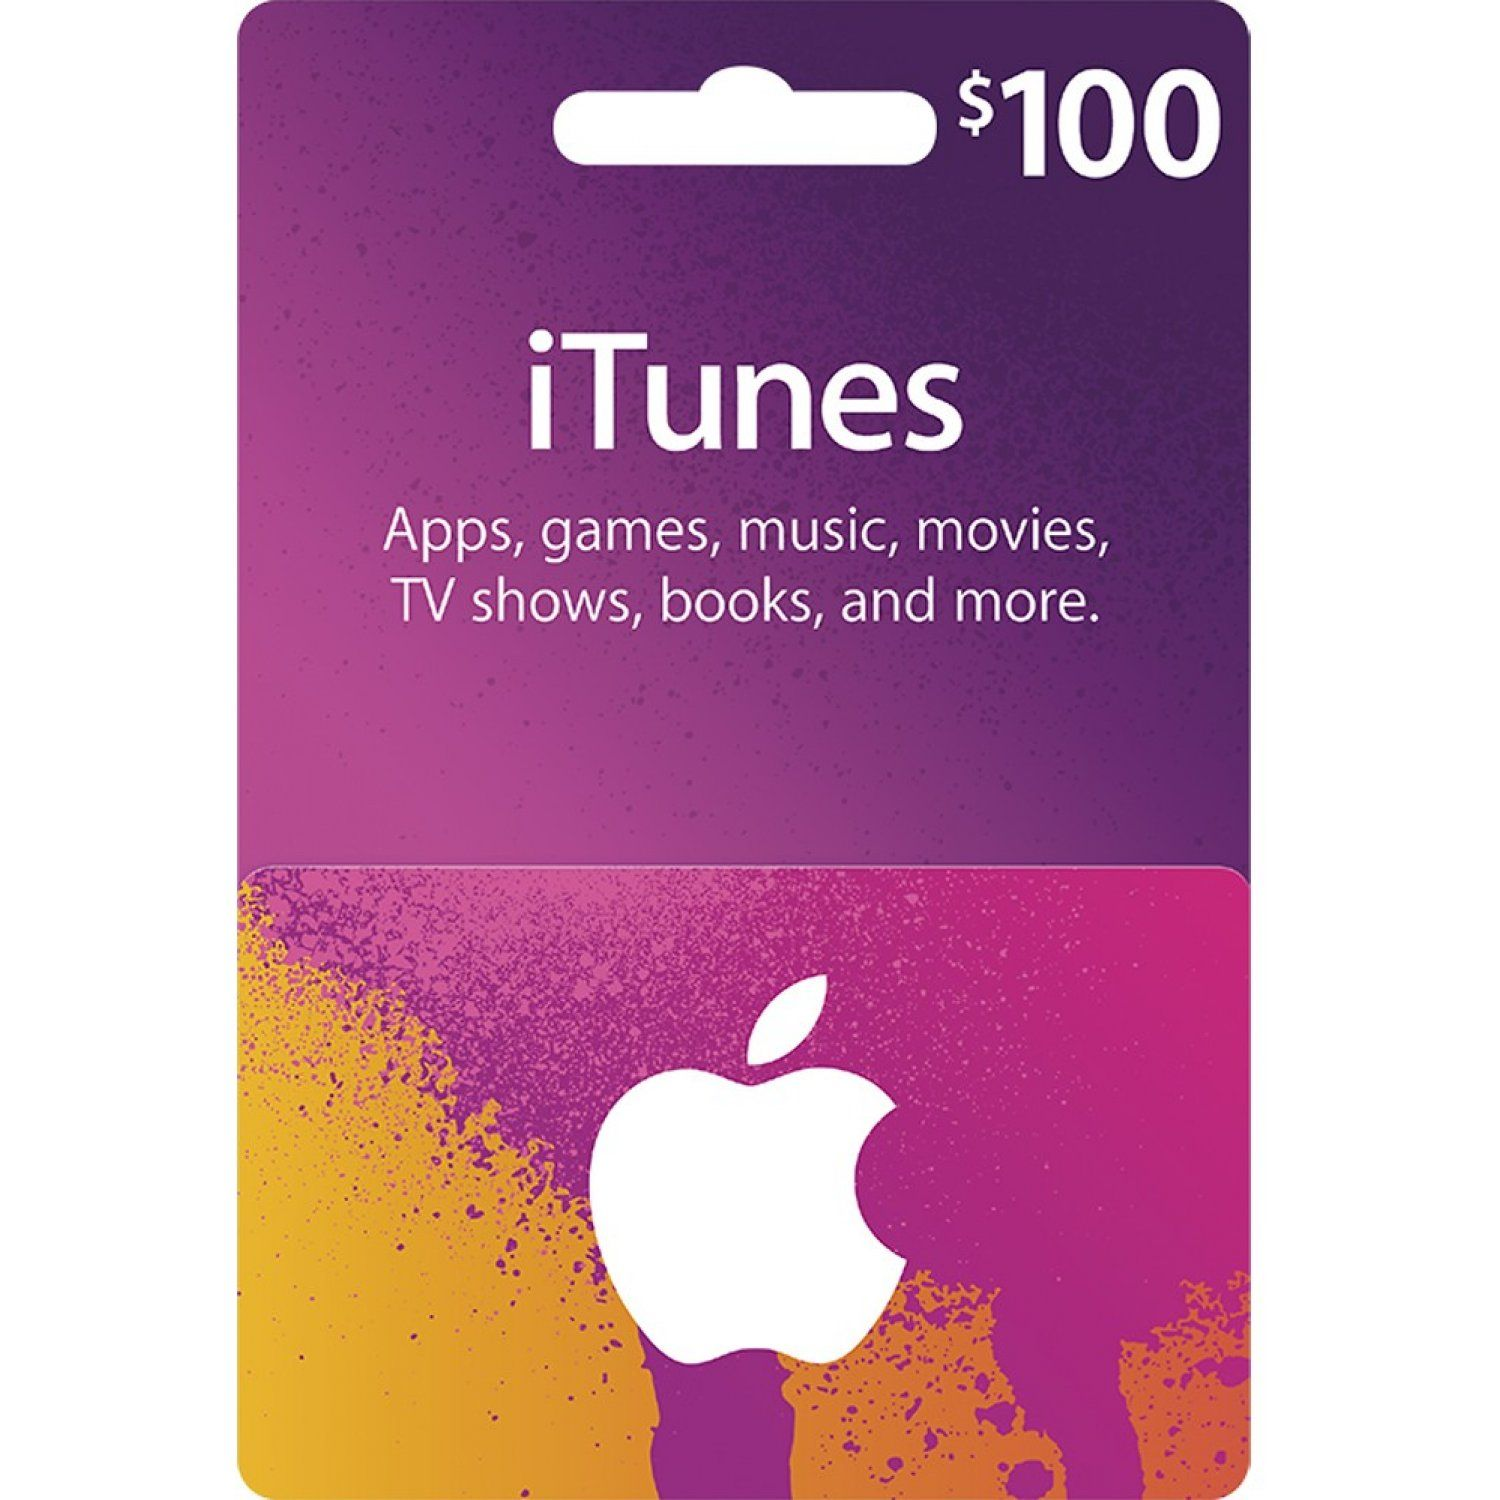 Itunes Card Usd 100 For Us Accounts Only Digital Itunes Gift